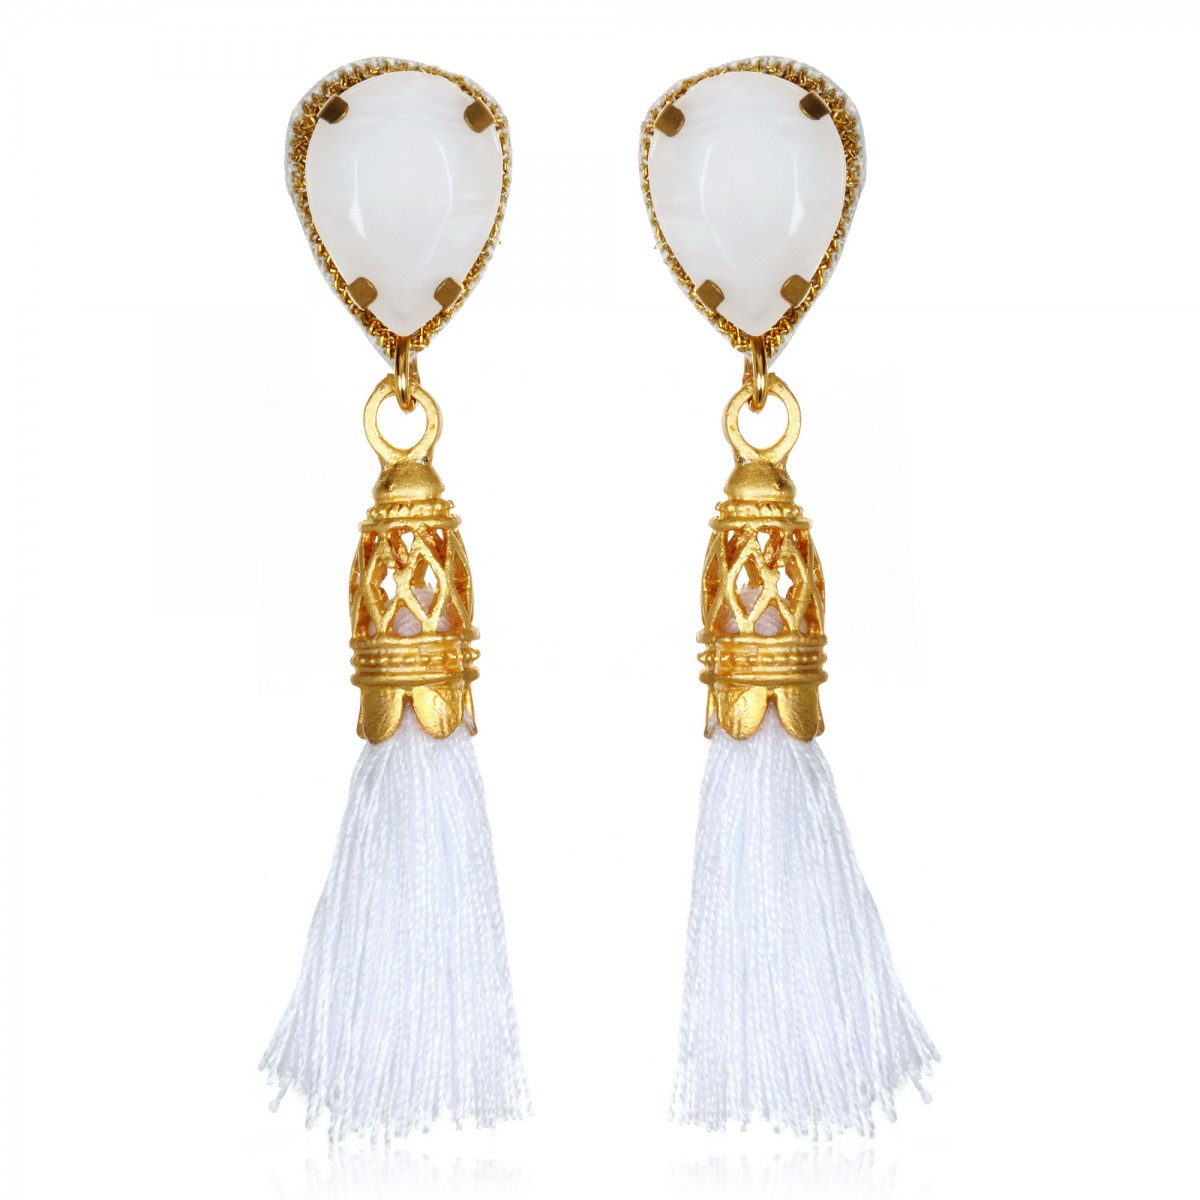 White Tassel Fringe Earrings by SUZANNA DAI